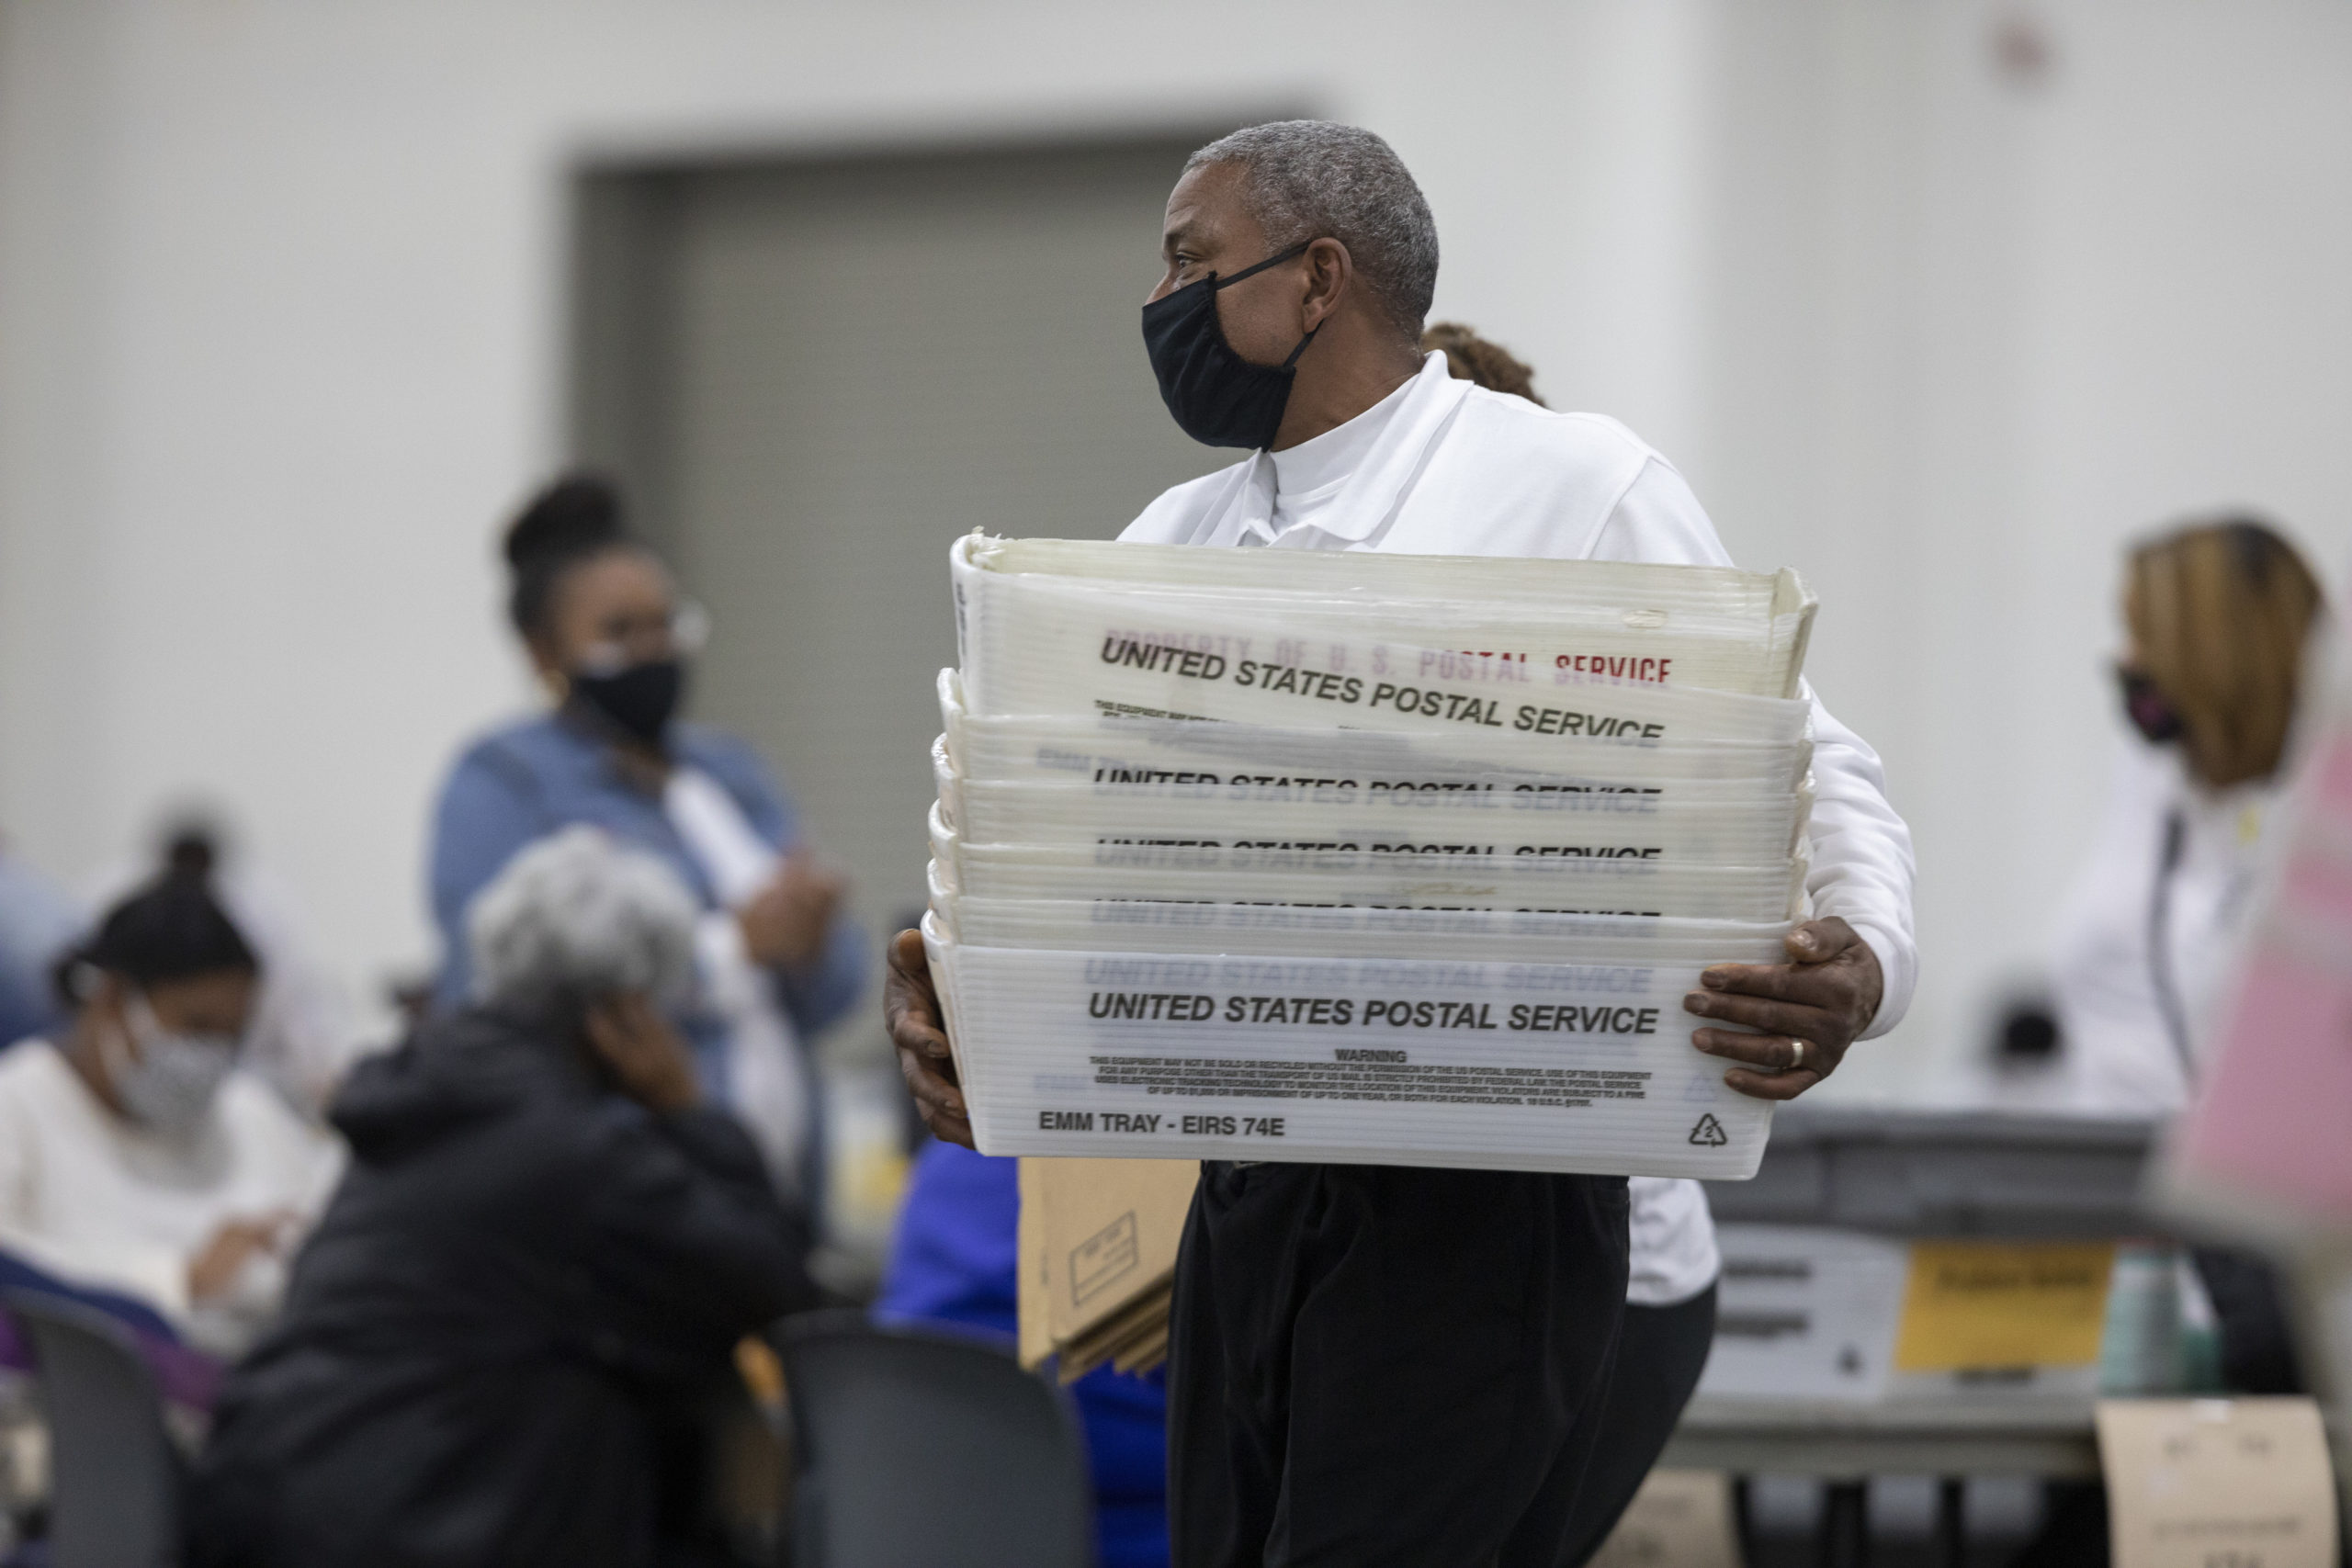 DETROIT, MI - NOVEMBER 04: A worker with the Detroit Department of Elections carries empty boxes used to organize absentee ballots after nearing the end of the absentee ballot count at the Central Counting Board in the TCF Center on November 4, 2020 in Detroit, Michigan. President Trump narrowly won Michigan in 2016, and both he and Joe Biden campaigned heavily in the battleground state in 2020. (Photo by Elaine Cromie/Getty Images)